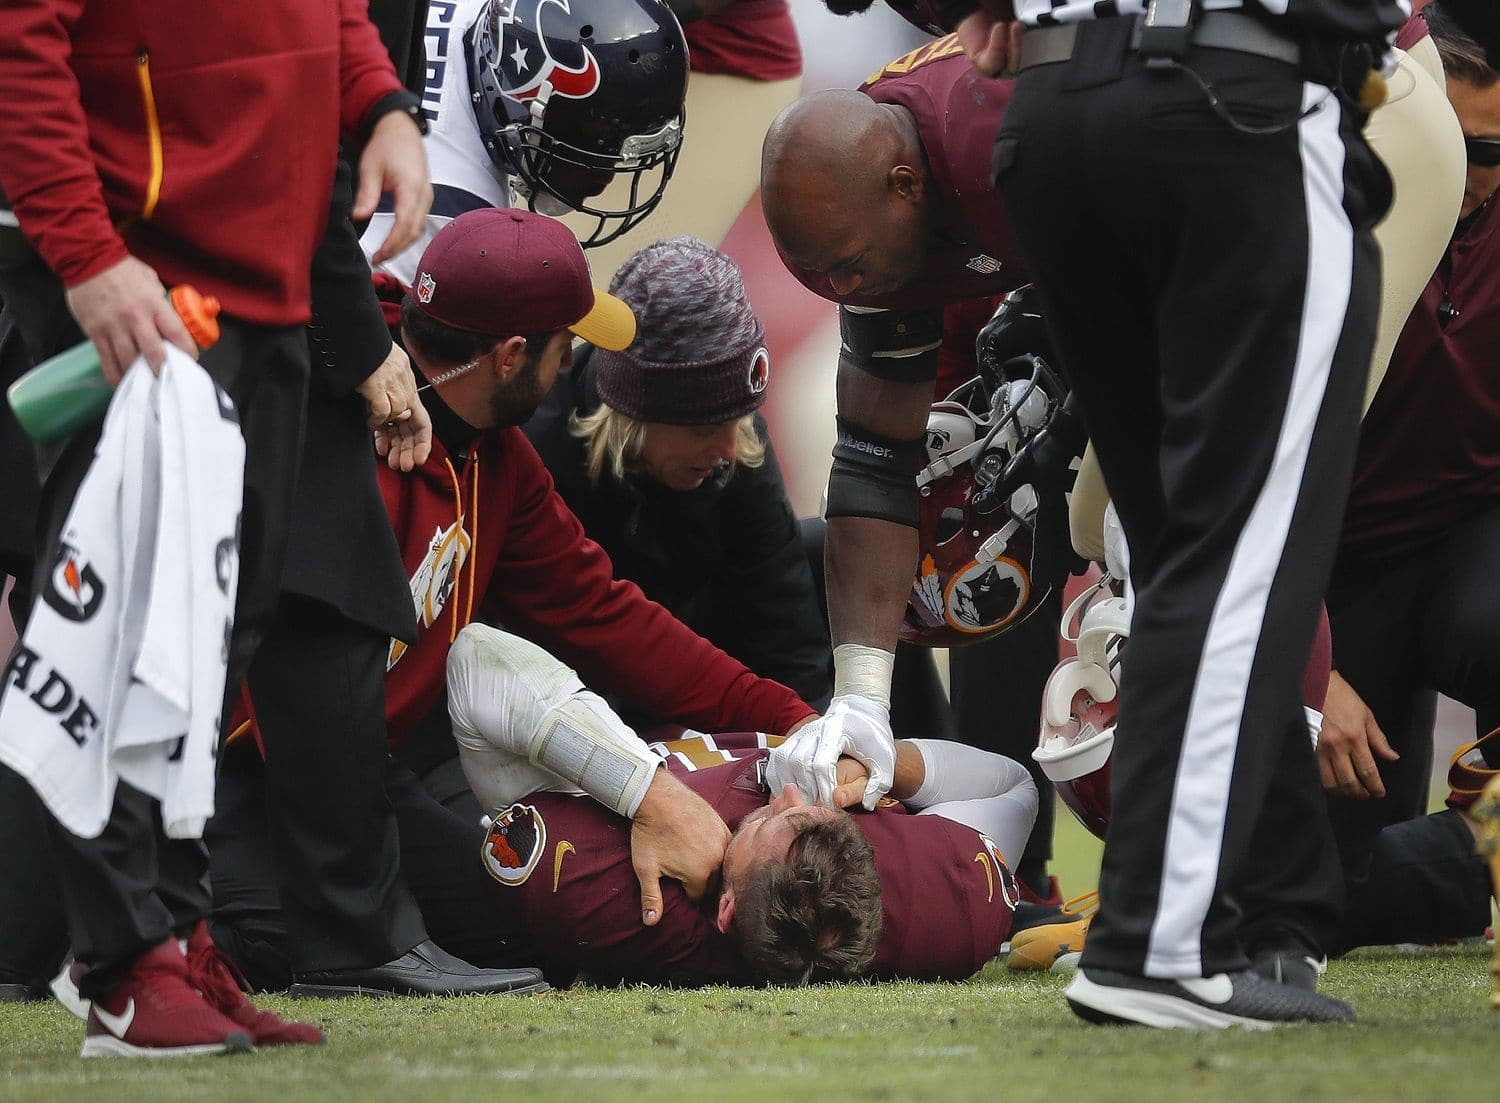 Washington Redskins quarterback Alex Smith (11) lays on the ground as teammate Adrian Peterson, right, holds his hand after an injury during the second half of an NFL football game against the Houston Texans, Sunday, Nov. 18, 2018 in Landover, Md. Smith broke his right tibia and fibula on a sack by Texans' Kareem Jackson. (AP Photo/Pablo Martinez Monsivais)